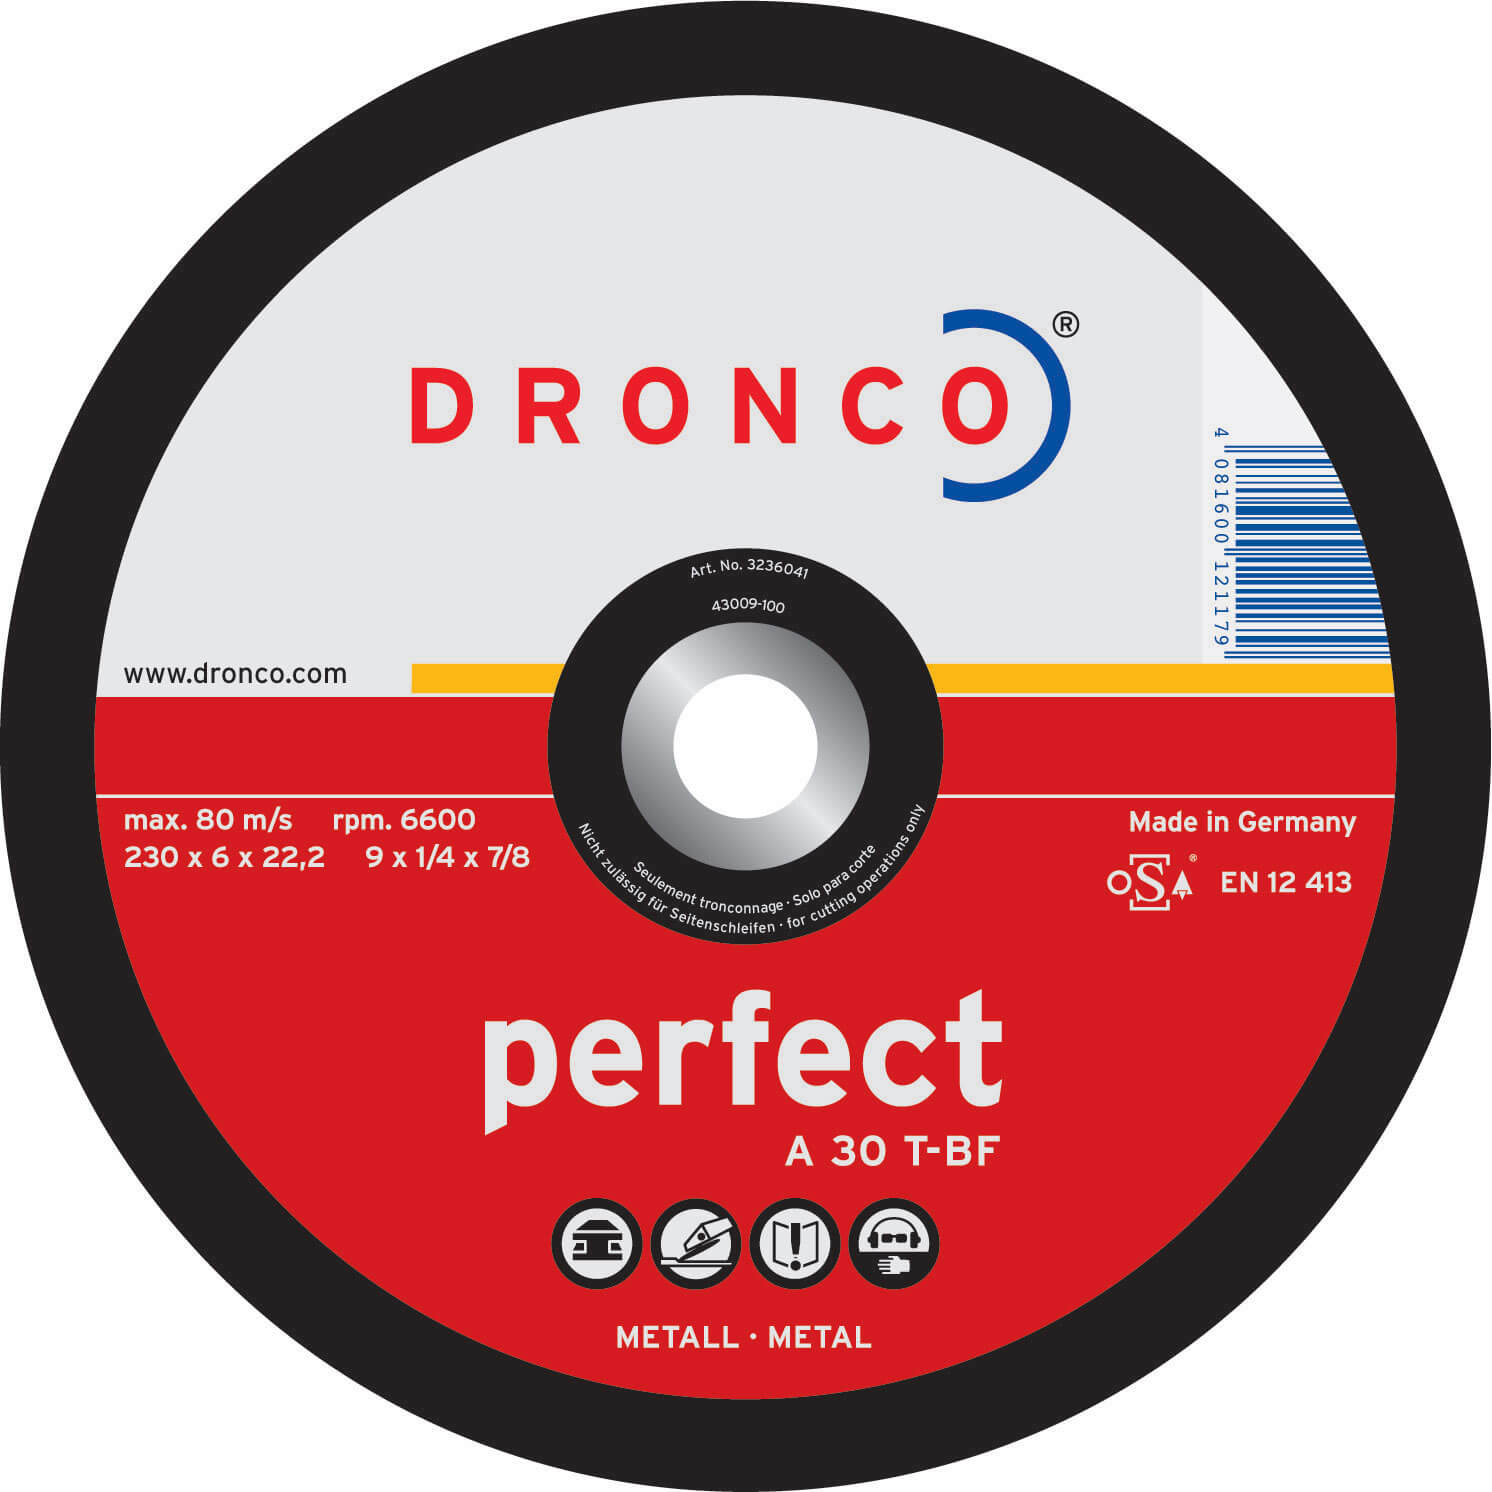 Image of Dronco A 30 T PERFECT Depressed Metal Grinding Disc 100mm Pack of 1